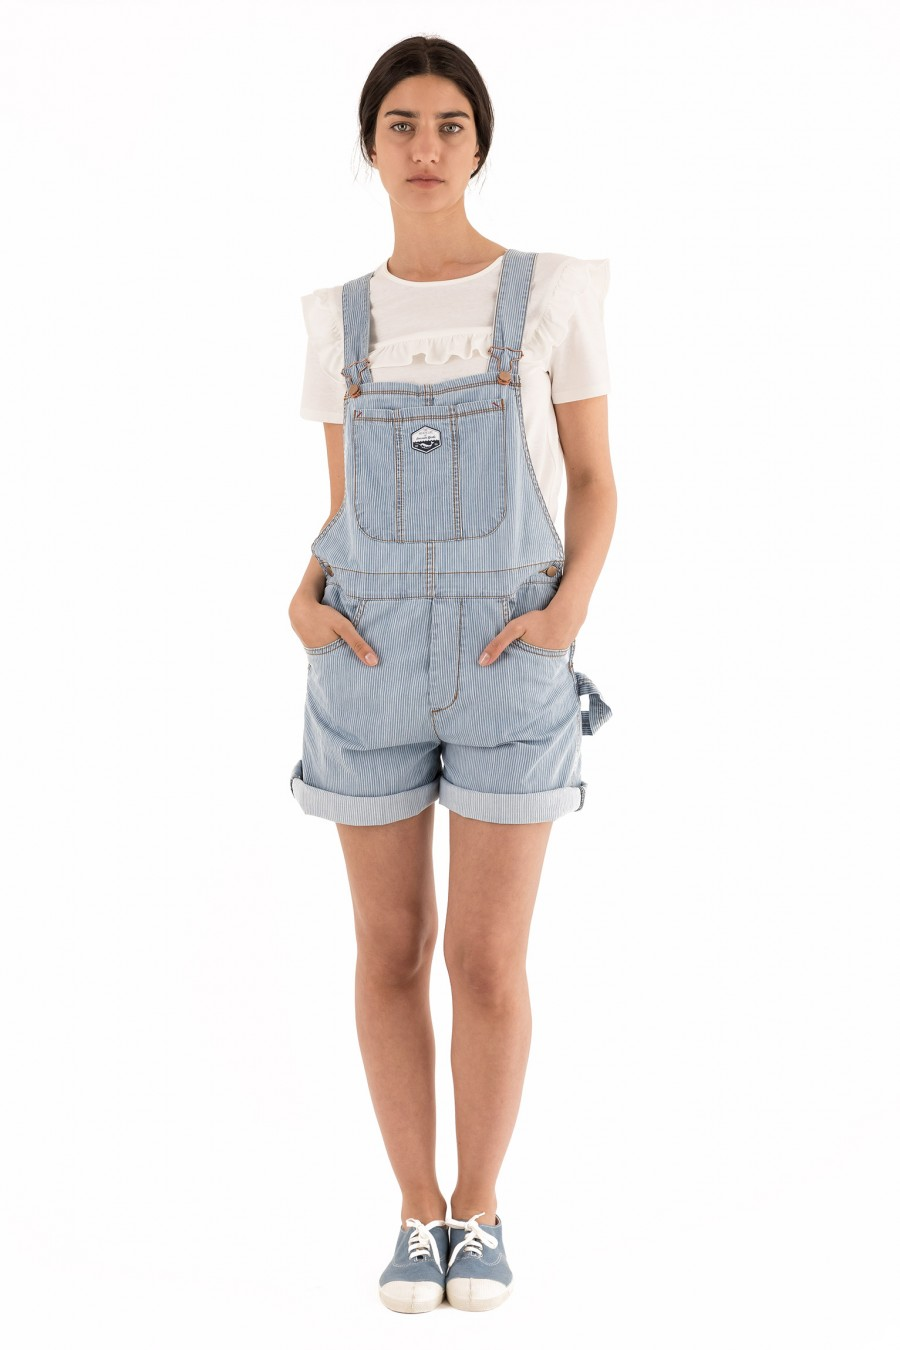 tight fitting overalls